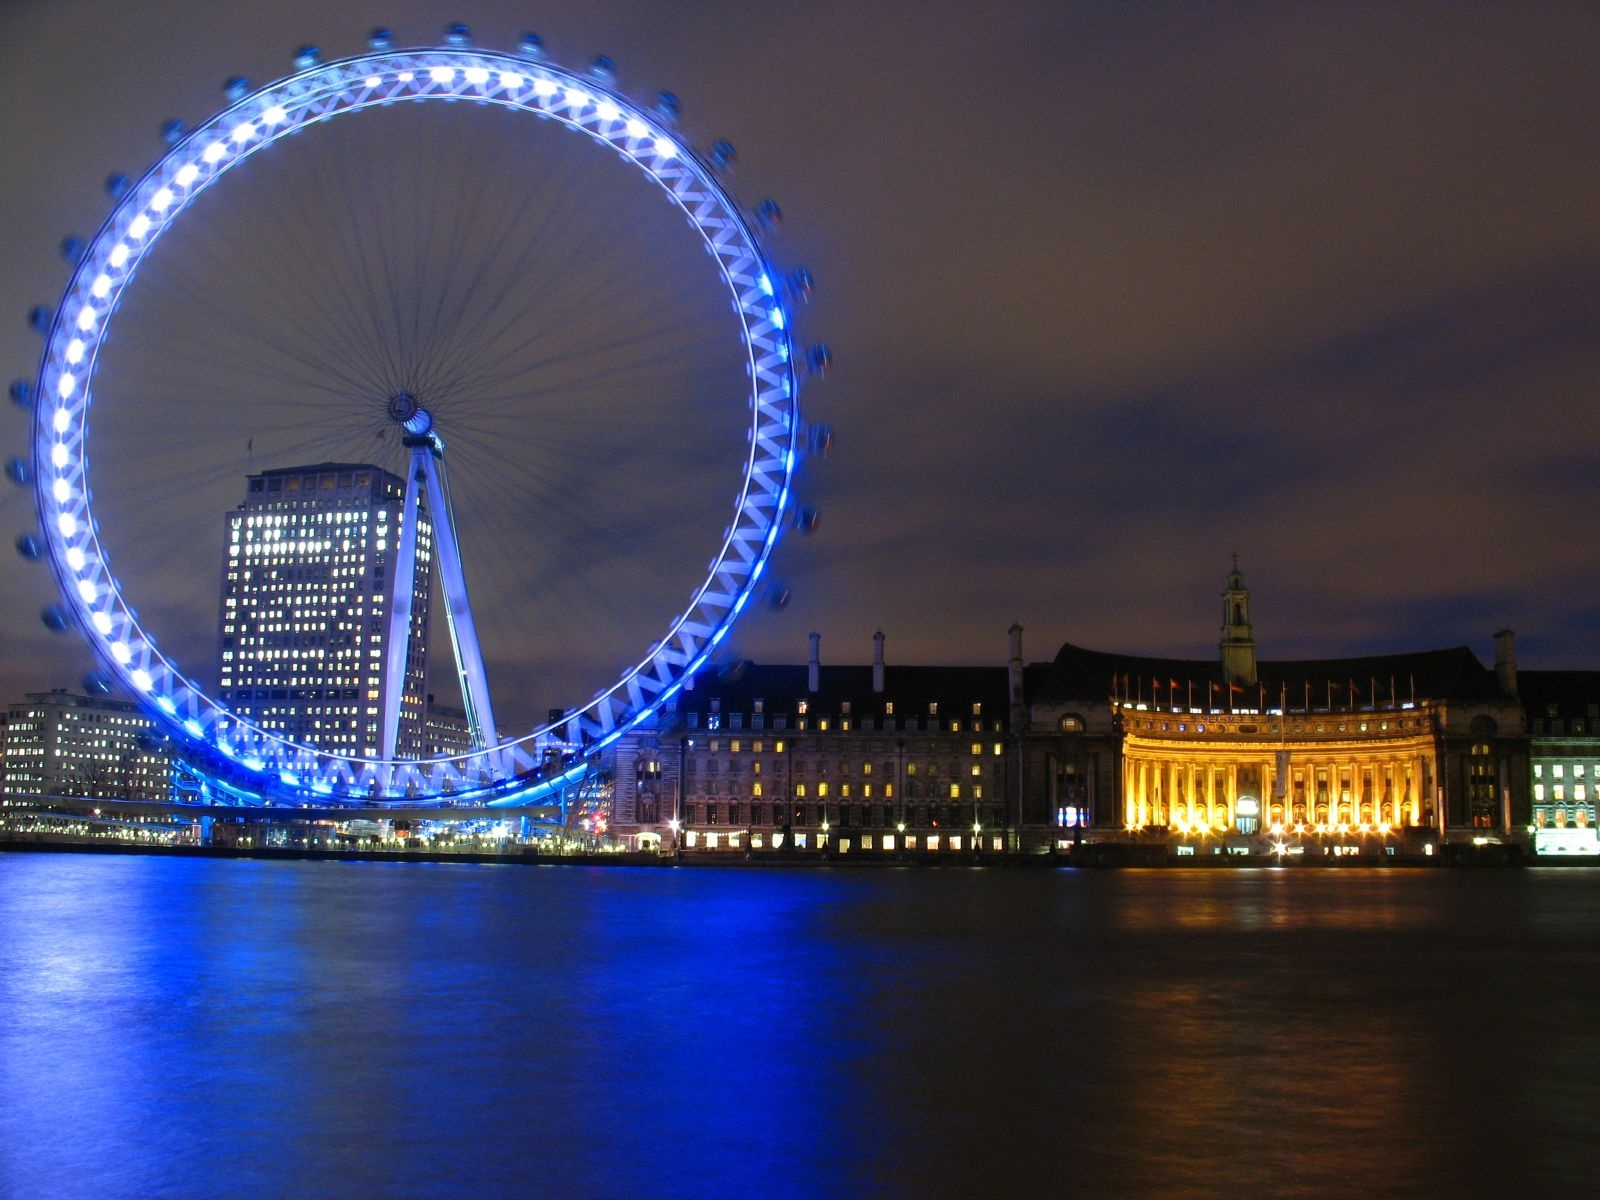 on August 20 2015 By admin Comments Off on London Eye HD Wallpapers 1600x1200